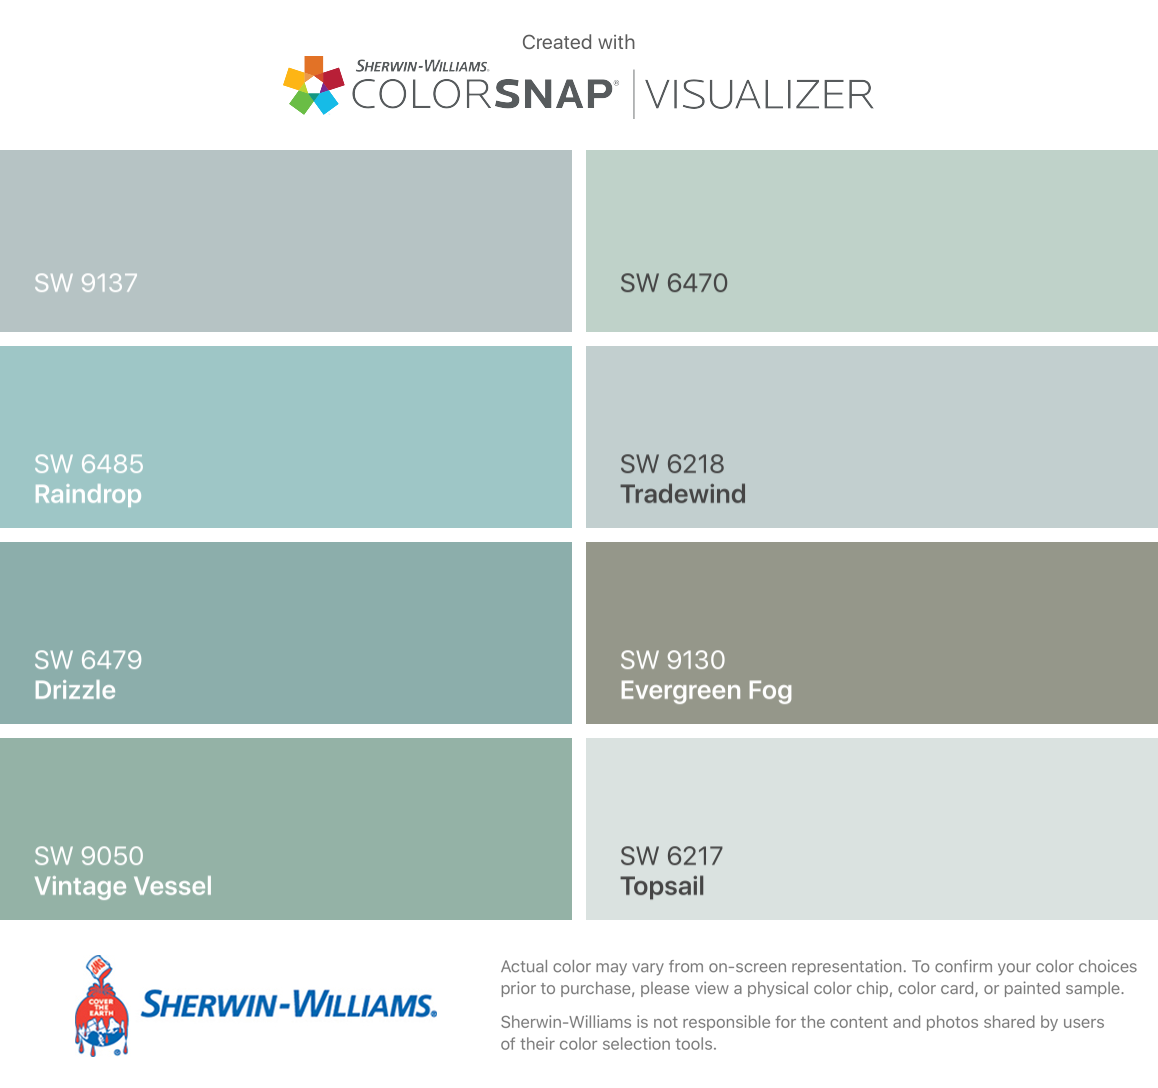 I Found These Colors With Colorsnap Visualizer For Iphone By Sherwin Williams Niebla Azul Sw 9137 Sherwin Williams Paint Colors Kilim Beige Exterior Paint